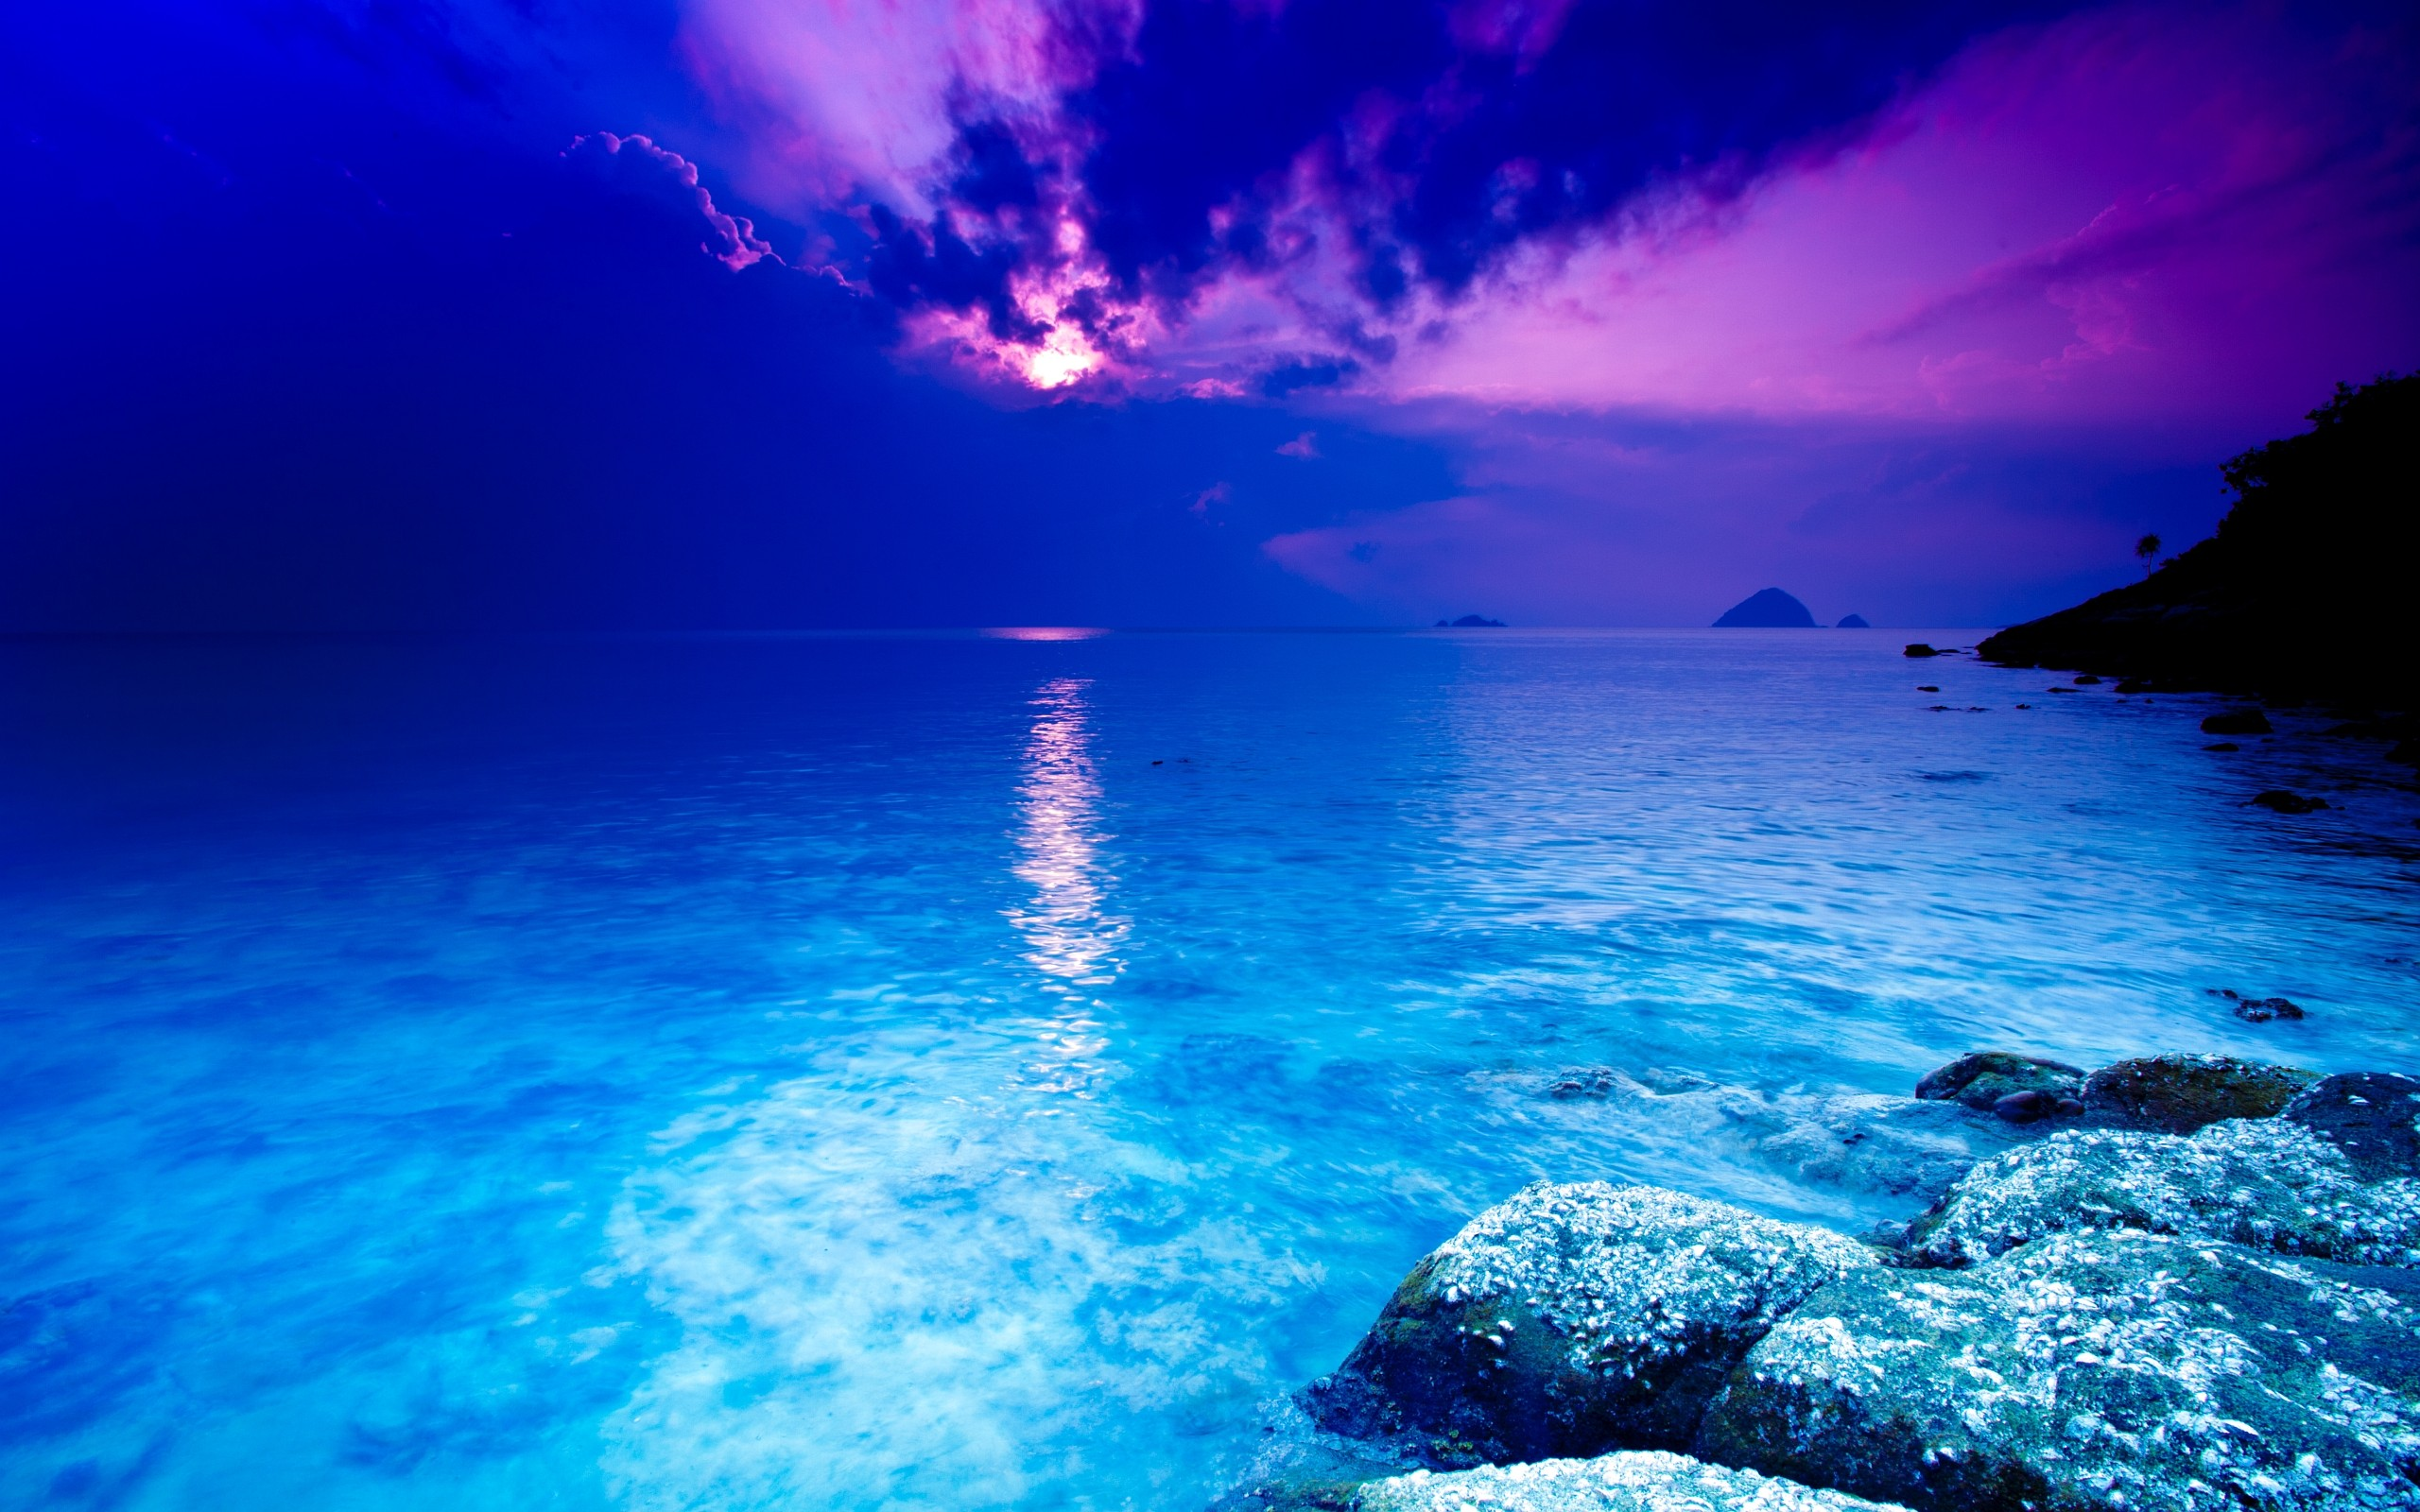 Download Blue Sea Wallpaper 2560x1600 Wallpoper 330275 2560x1600